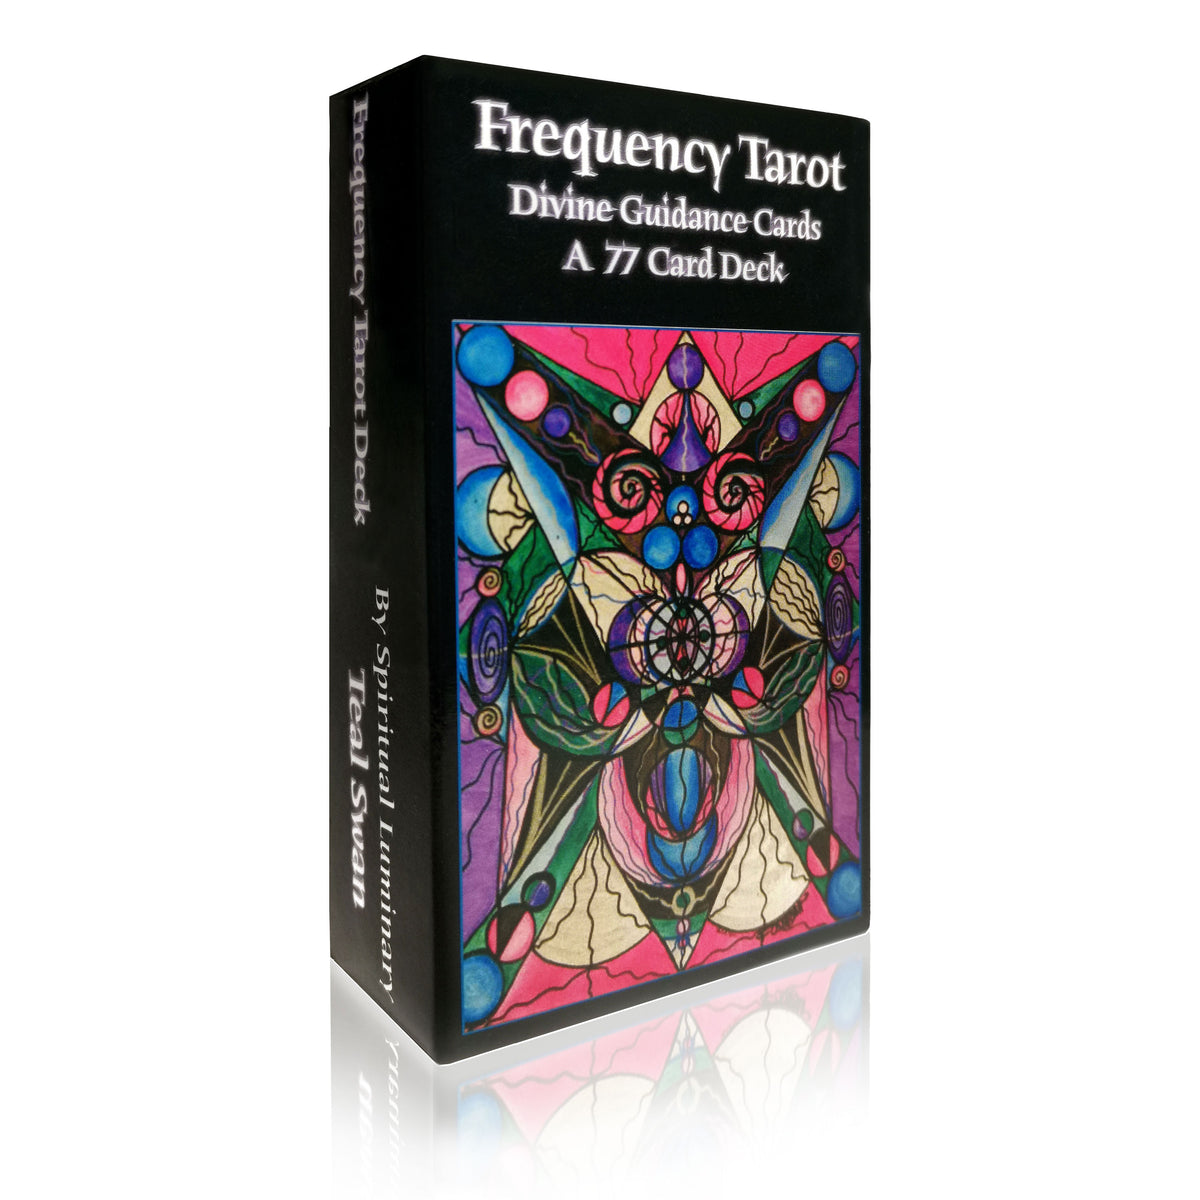 Frequency Tarot - Divine Guidance Cards